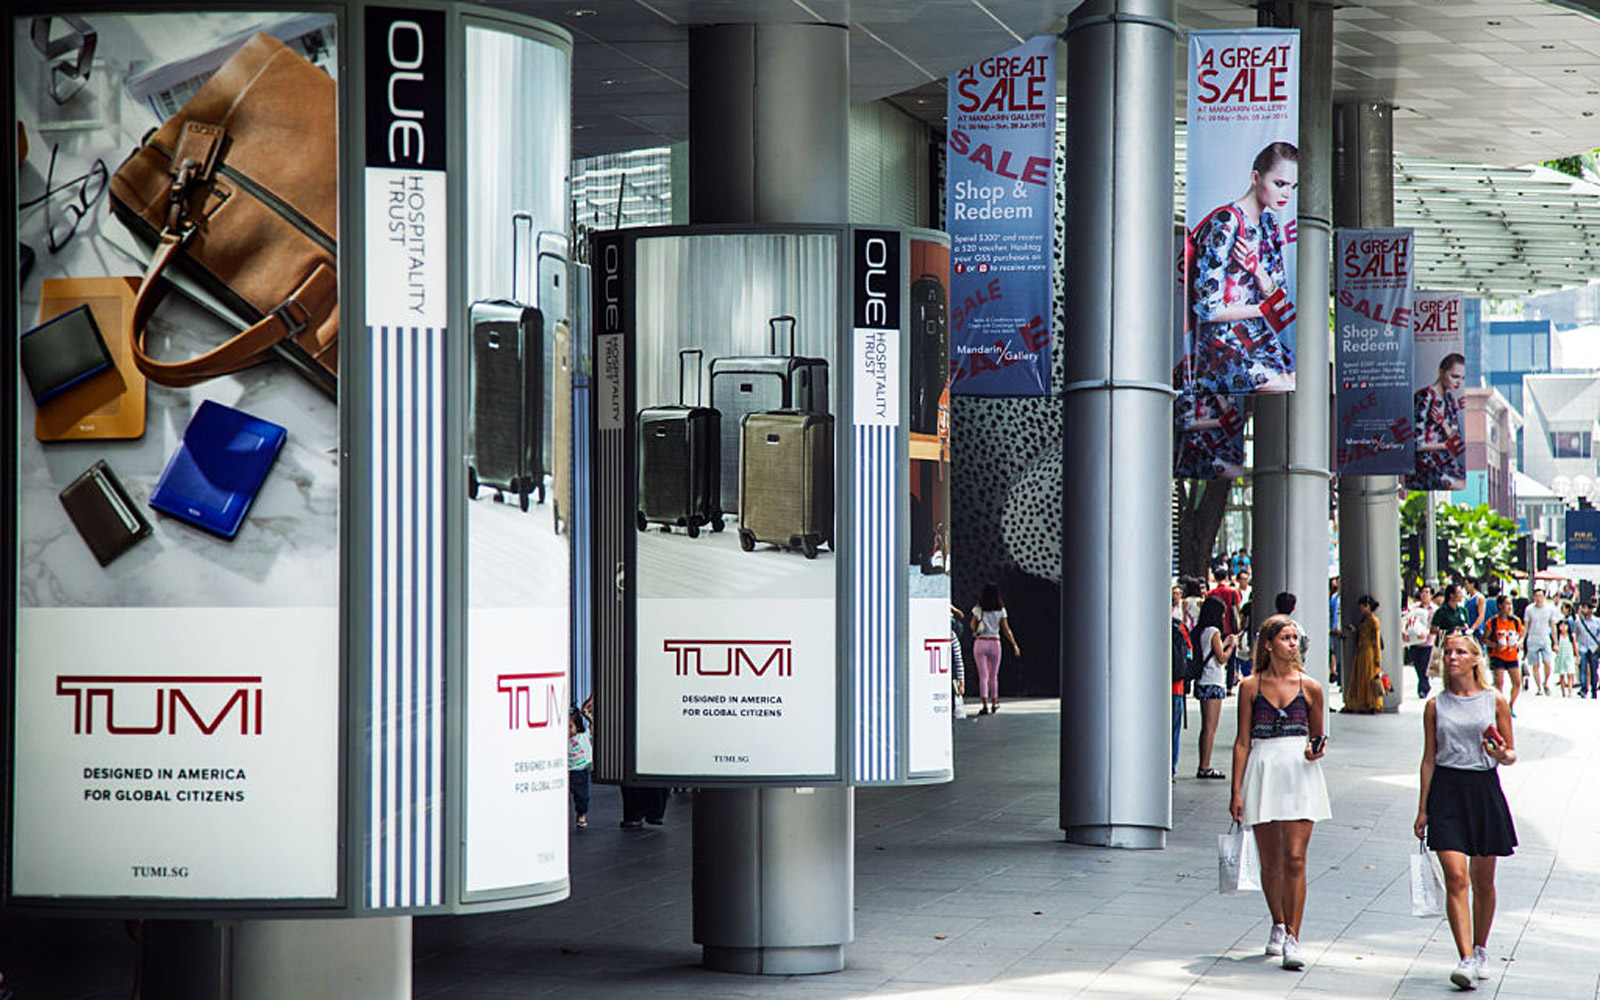 Shoppers walk past advertisements for Tumi Holdings Inc. on Orchard Road in Singapore, on Sunday, June 21, 2015. Consumer prices prices declined for a sixth straight month in April and employment contracted last quarter for the first time since 2009. Phot